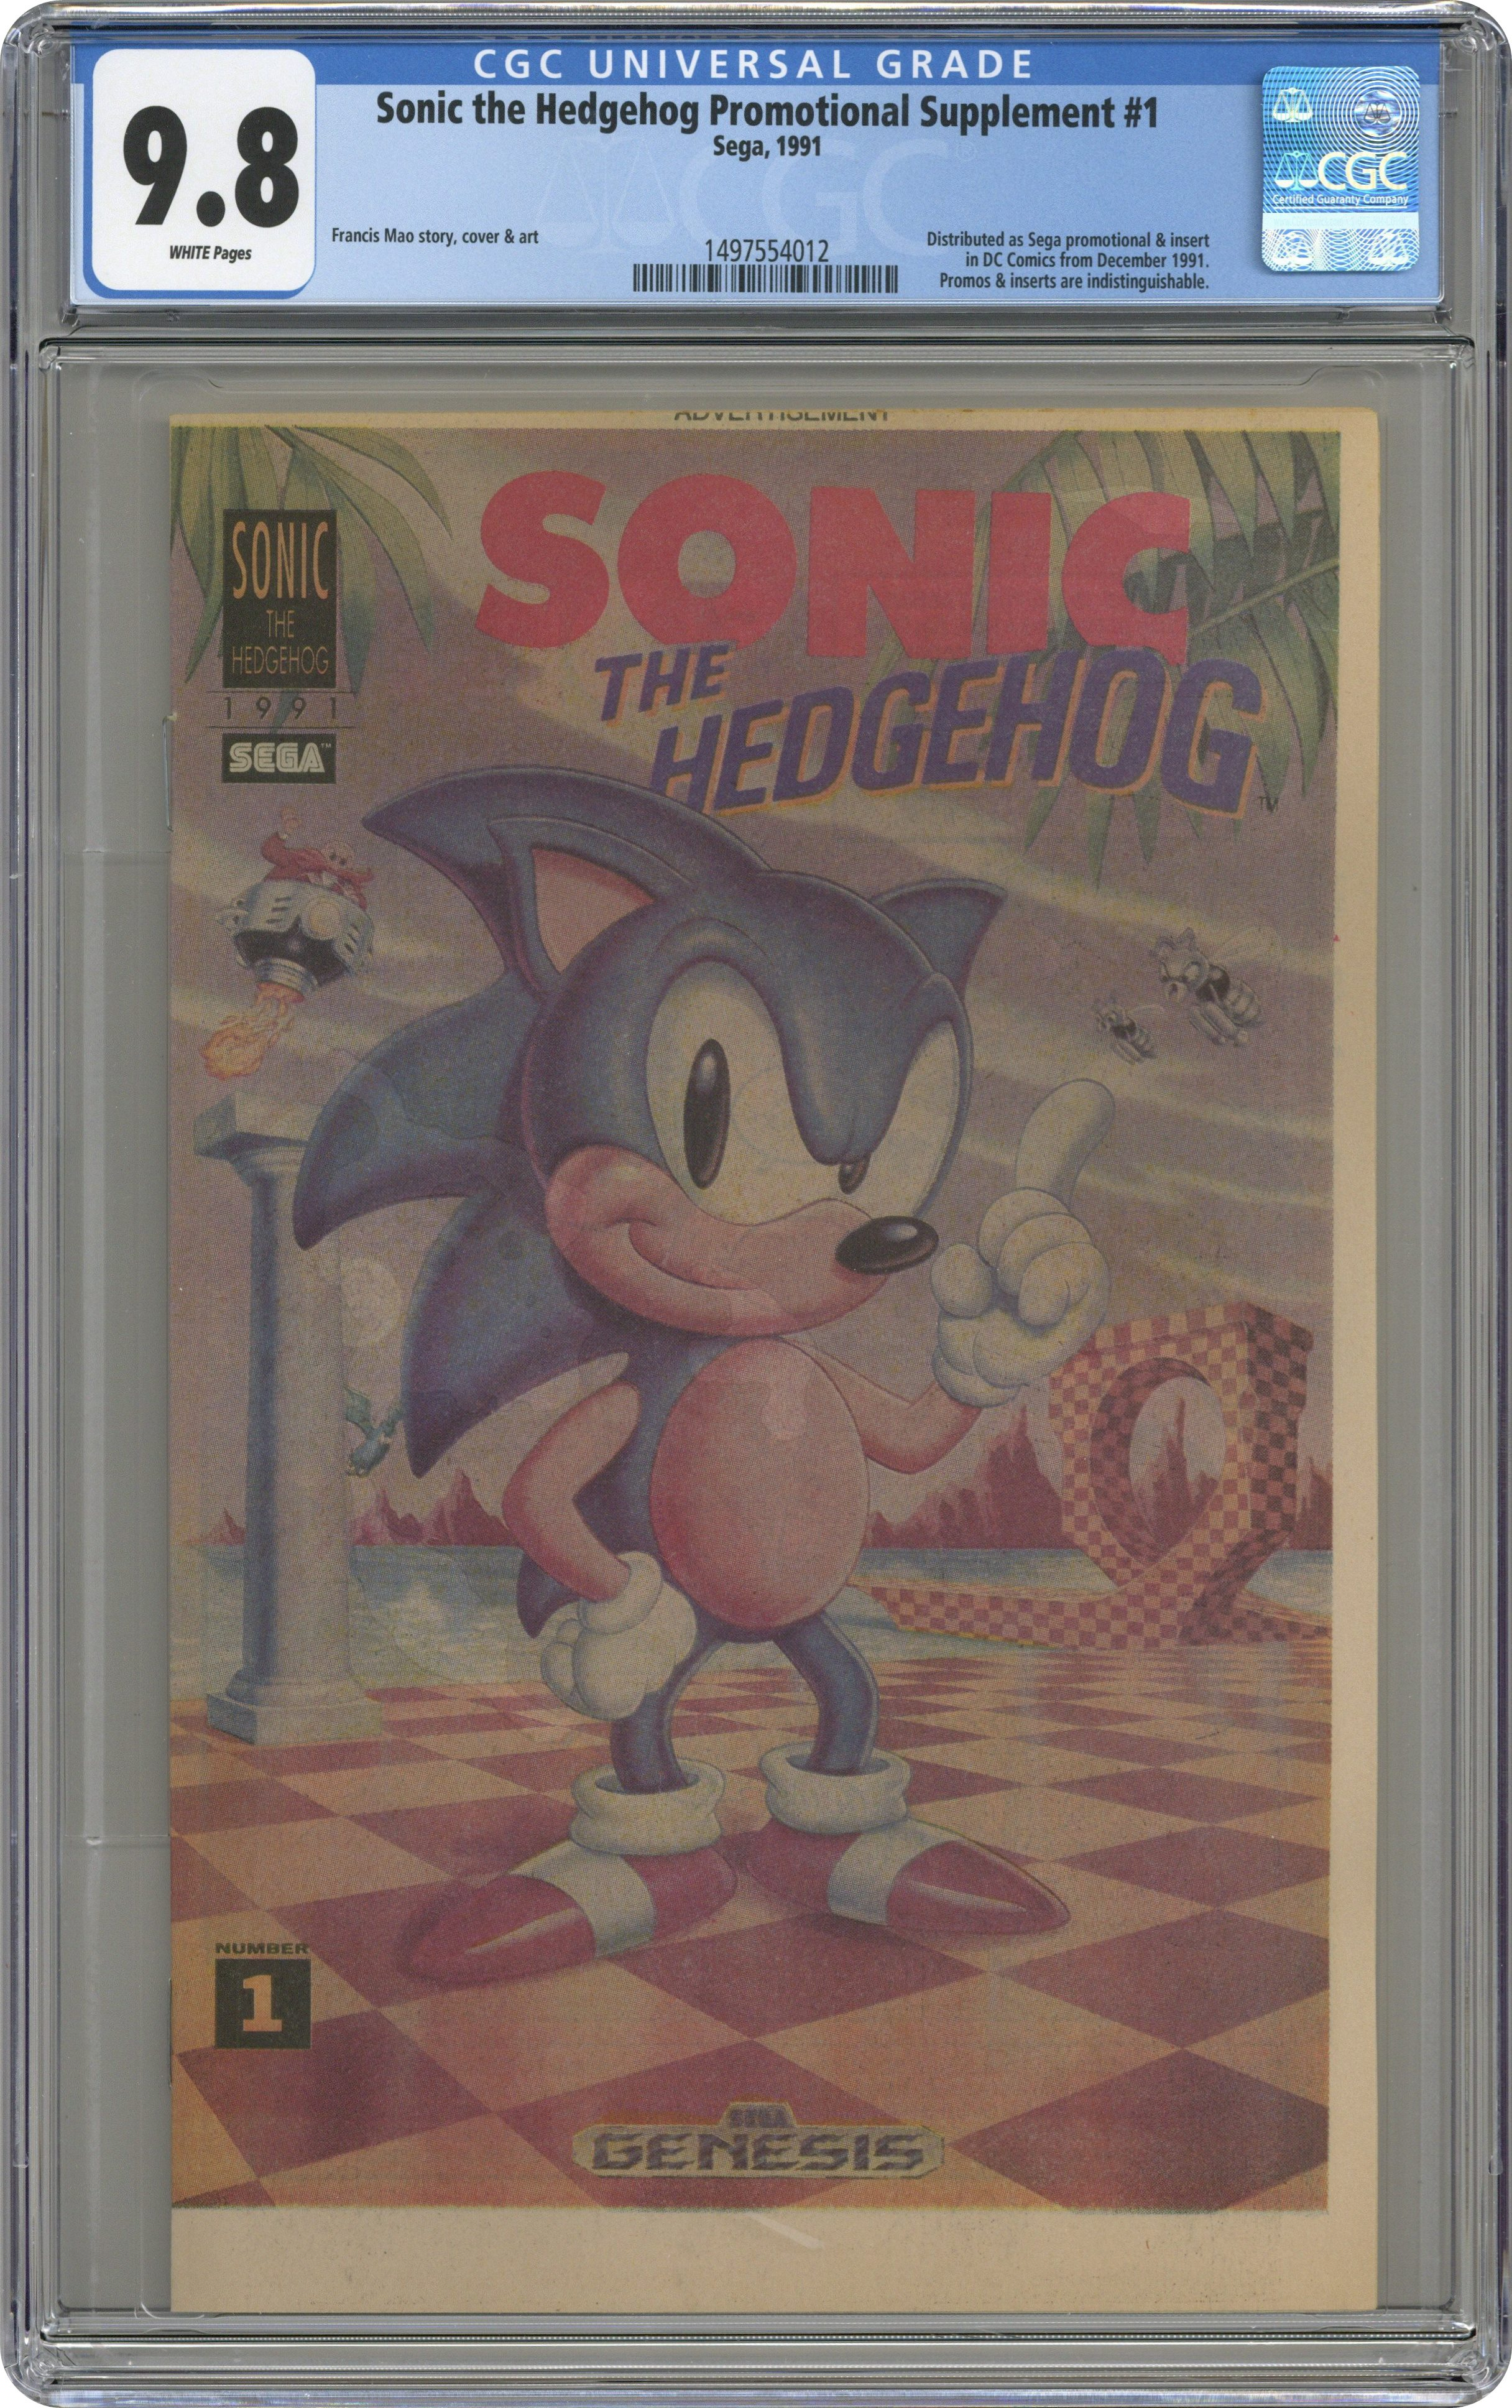 Comic Books Published By Sega Graded By Cgc